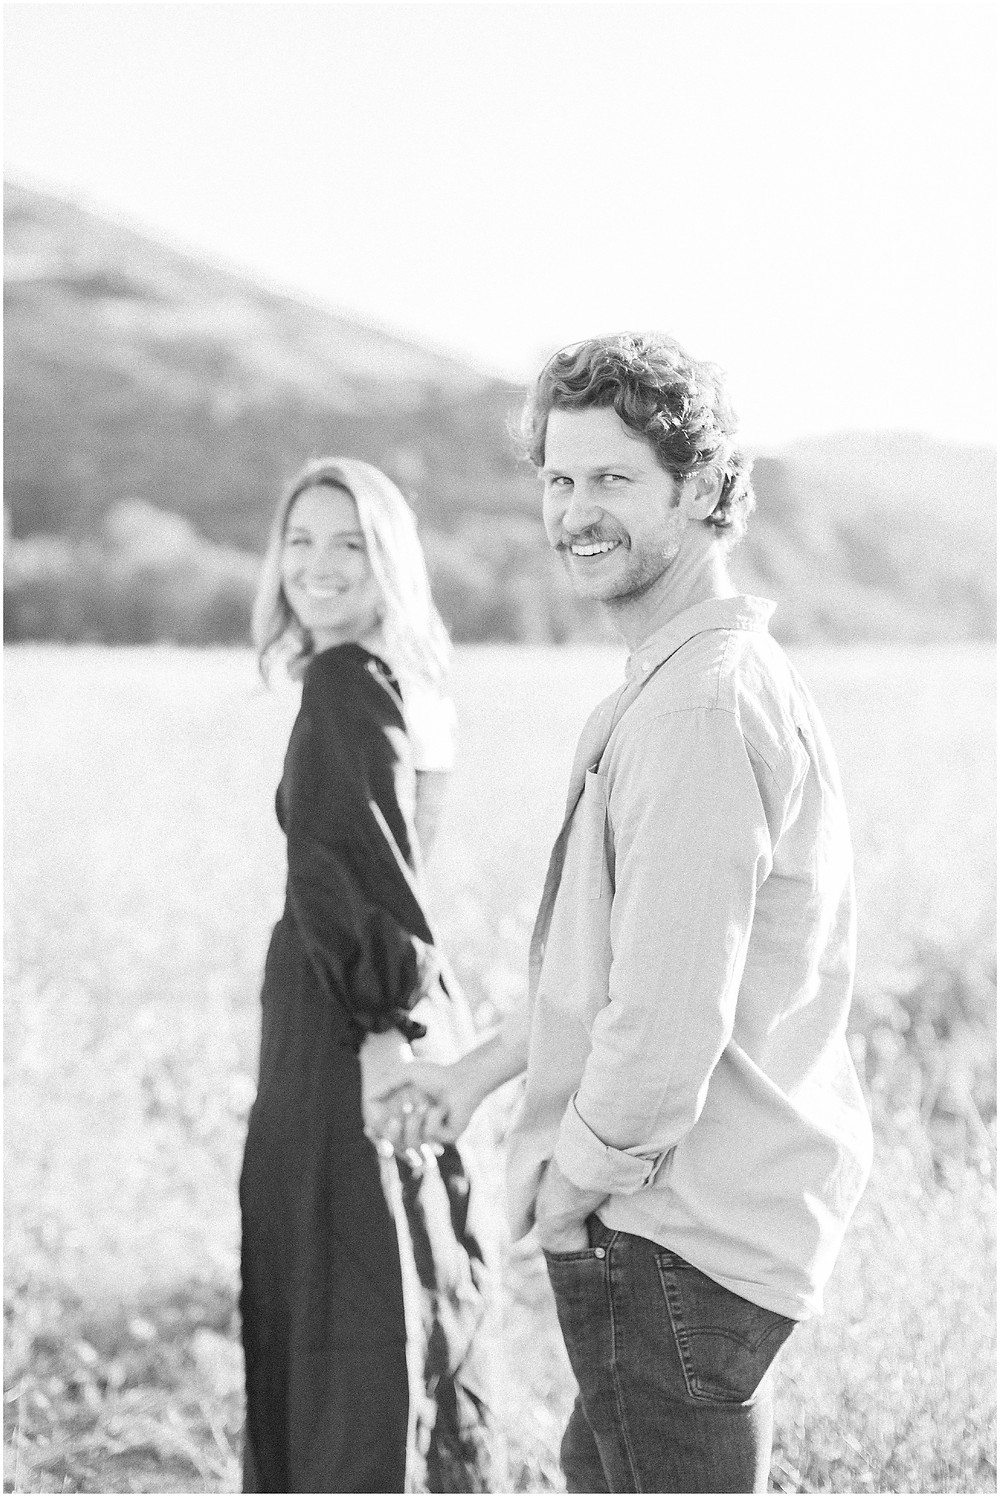 Sausalito Marin Headlands Cavallo Point San Francisco Bay Area engagement session by fine art wedding portrait elopement photographer Torrey Fox